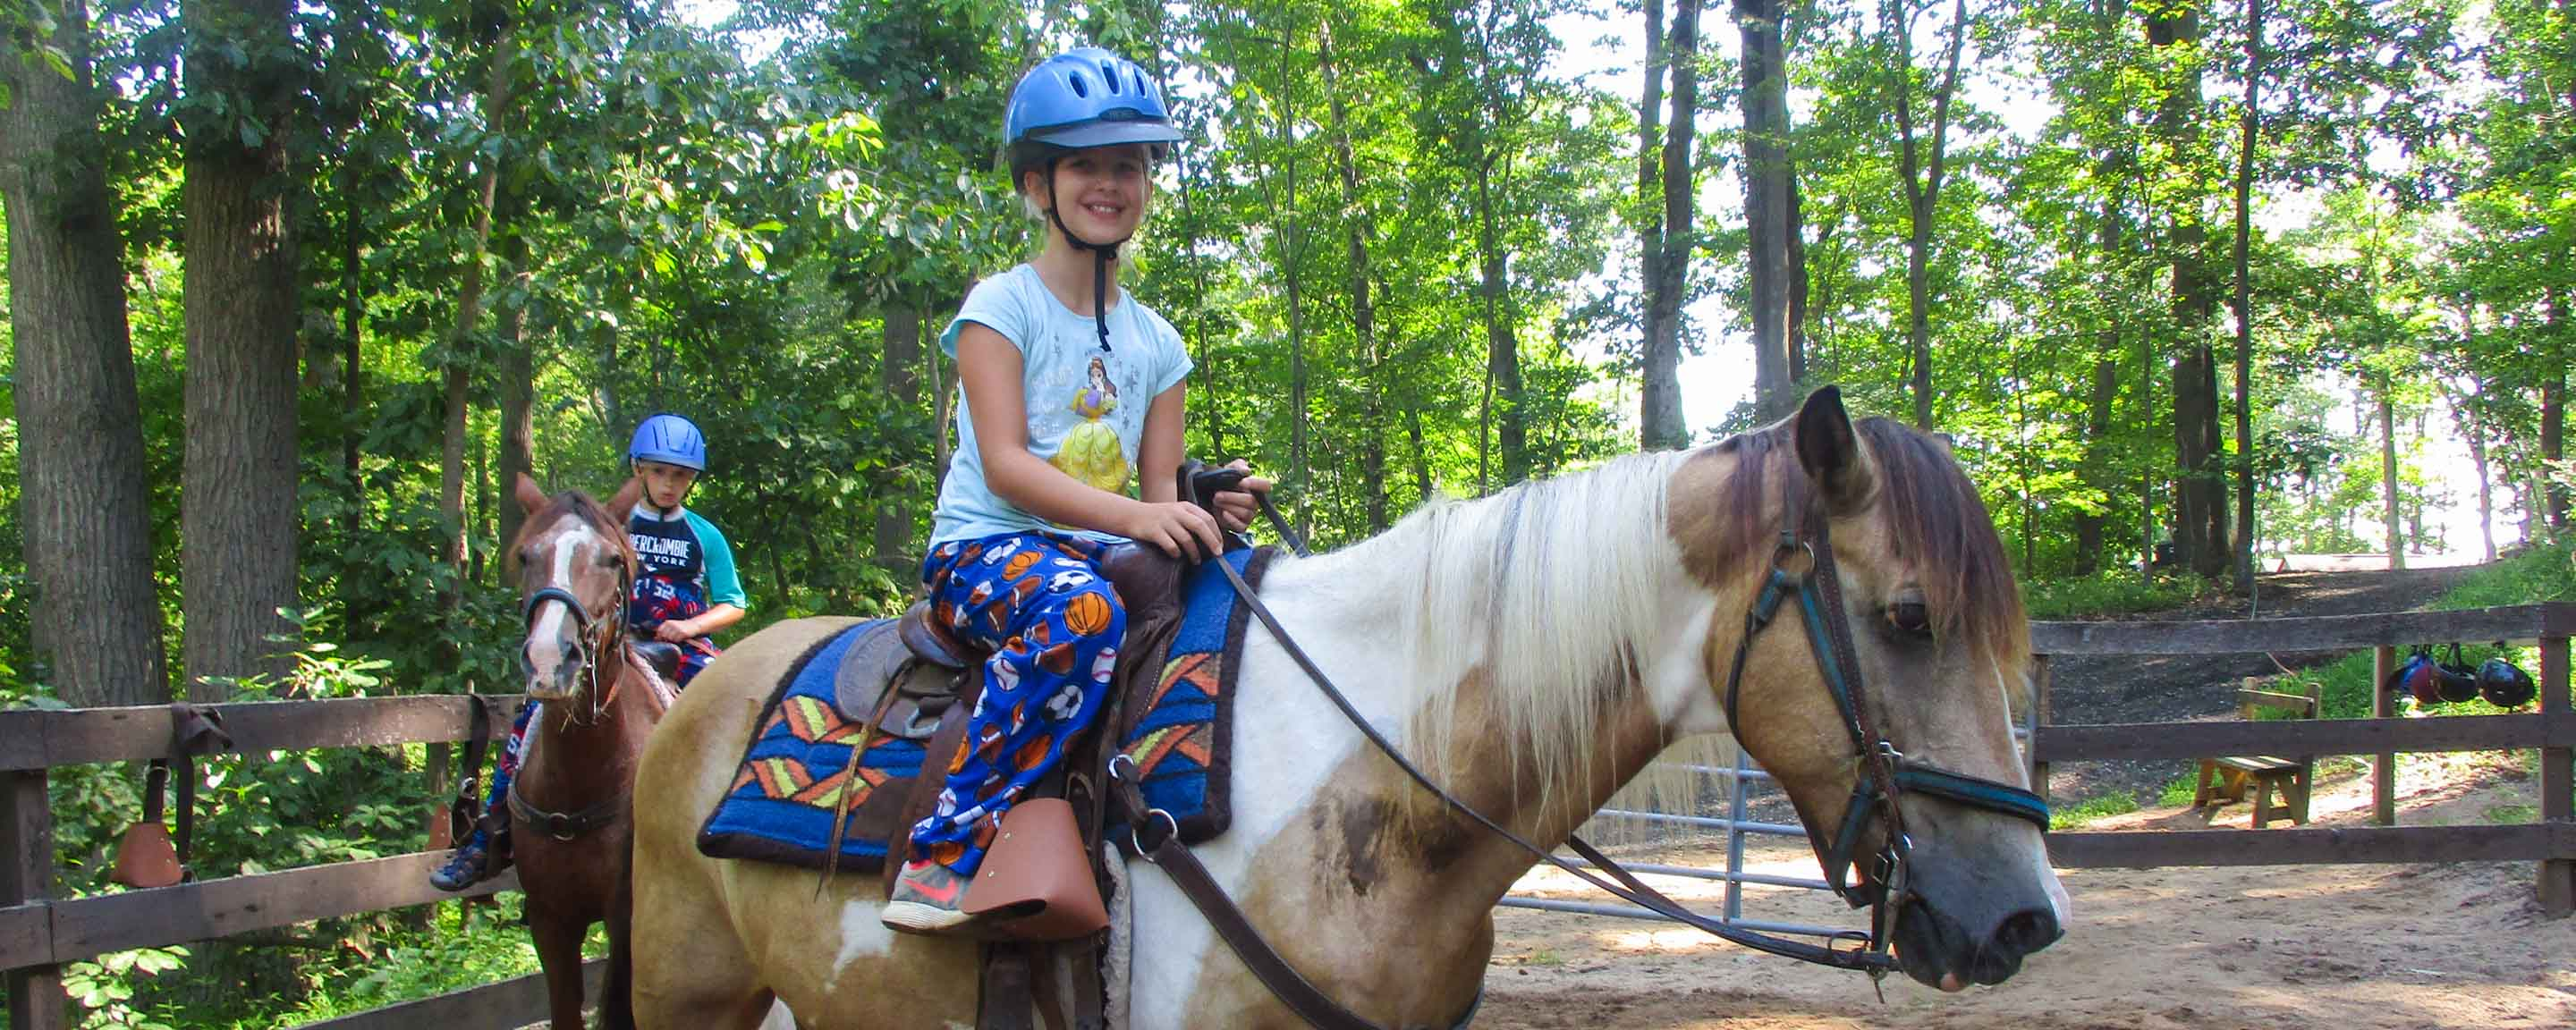 Campers horseback riding